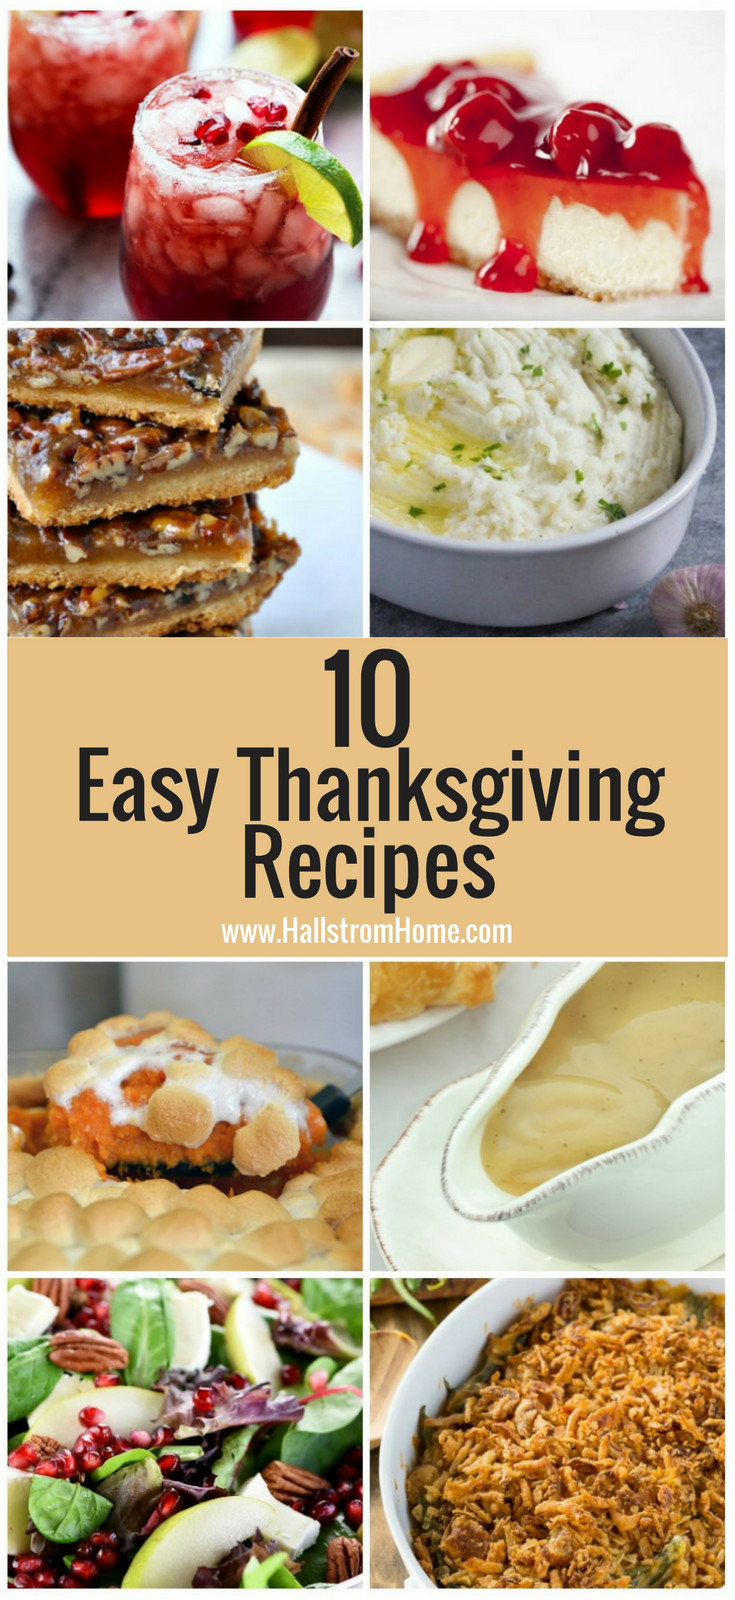 Quick And Easy Thanksgiving Recipes  10 Quick and Easy Thanksgiving Recipes Hallstrom Home